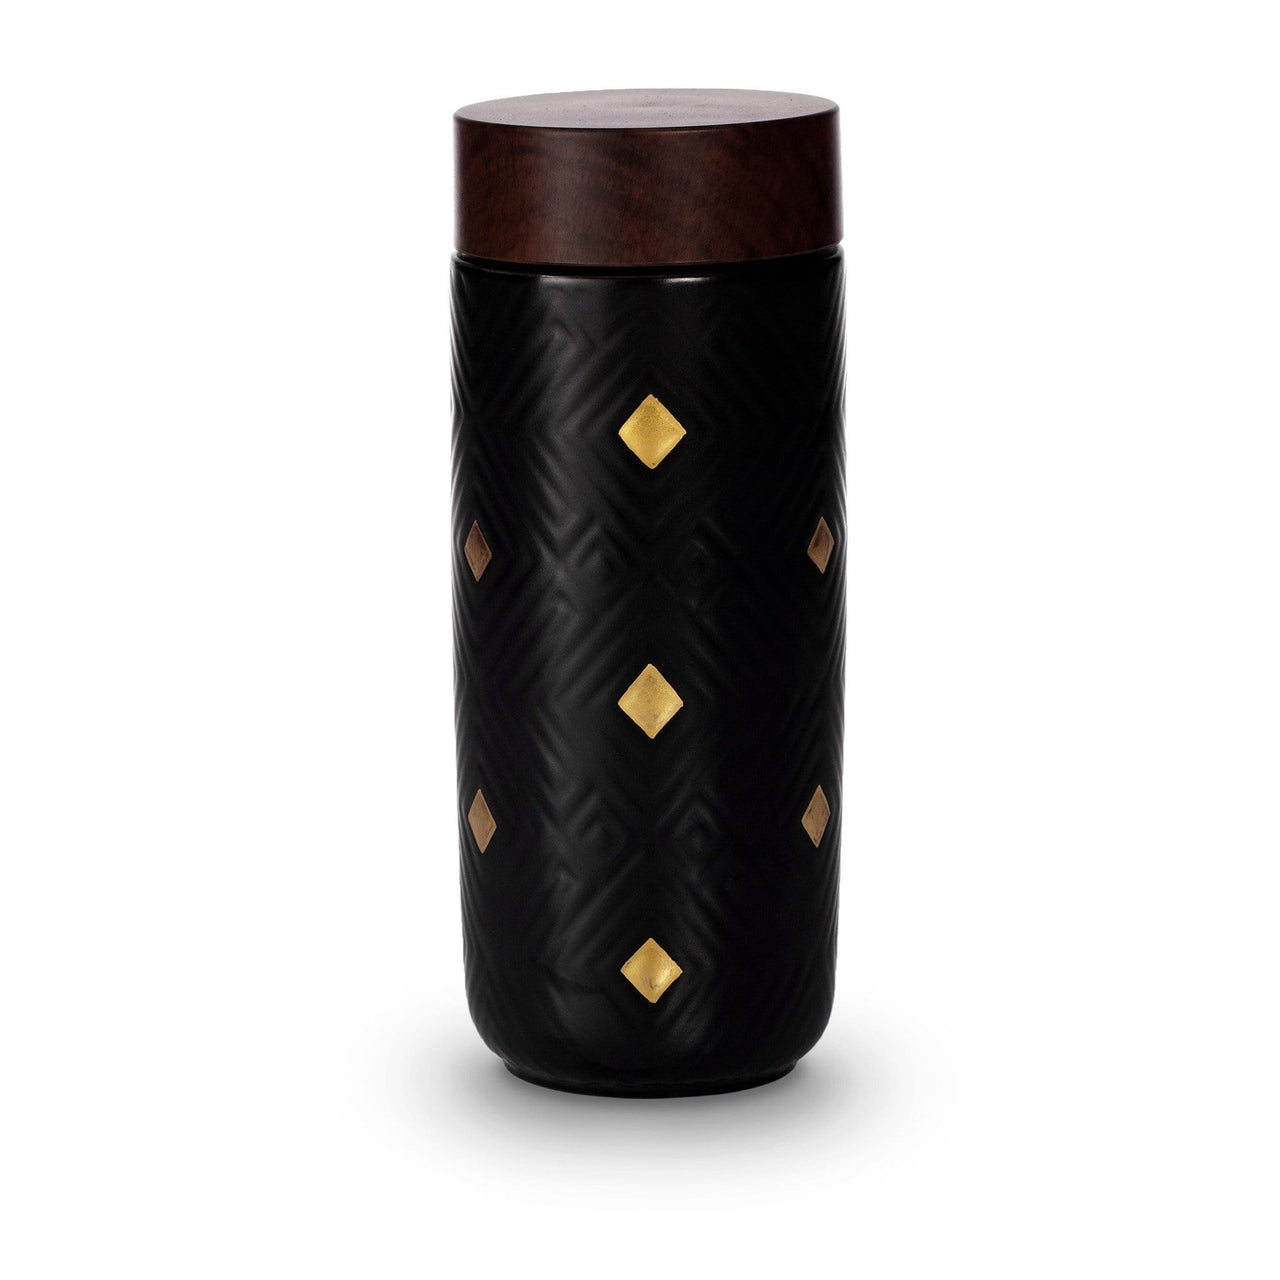 Acera Liven Flasks & Water Bottles Black + Hand-painted Golden Dimond Checks The Miracle Gold Ceramic Tumbler